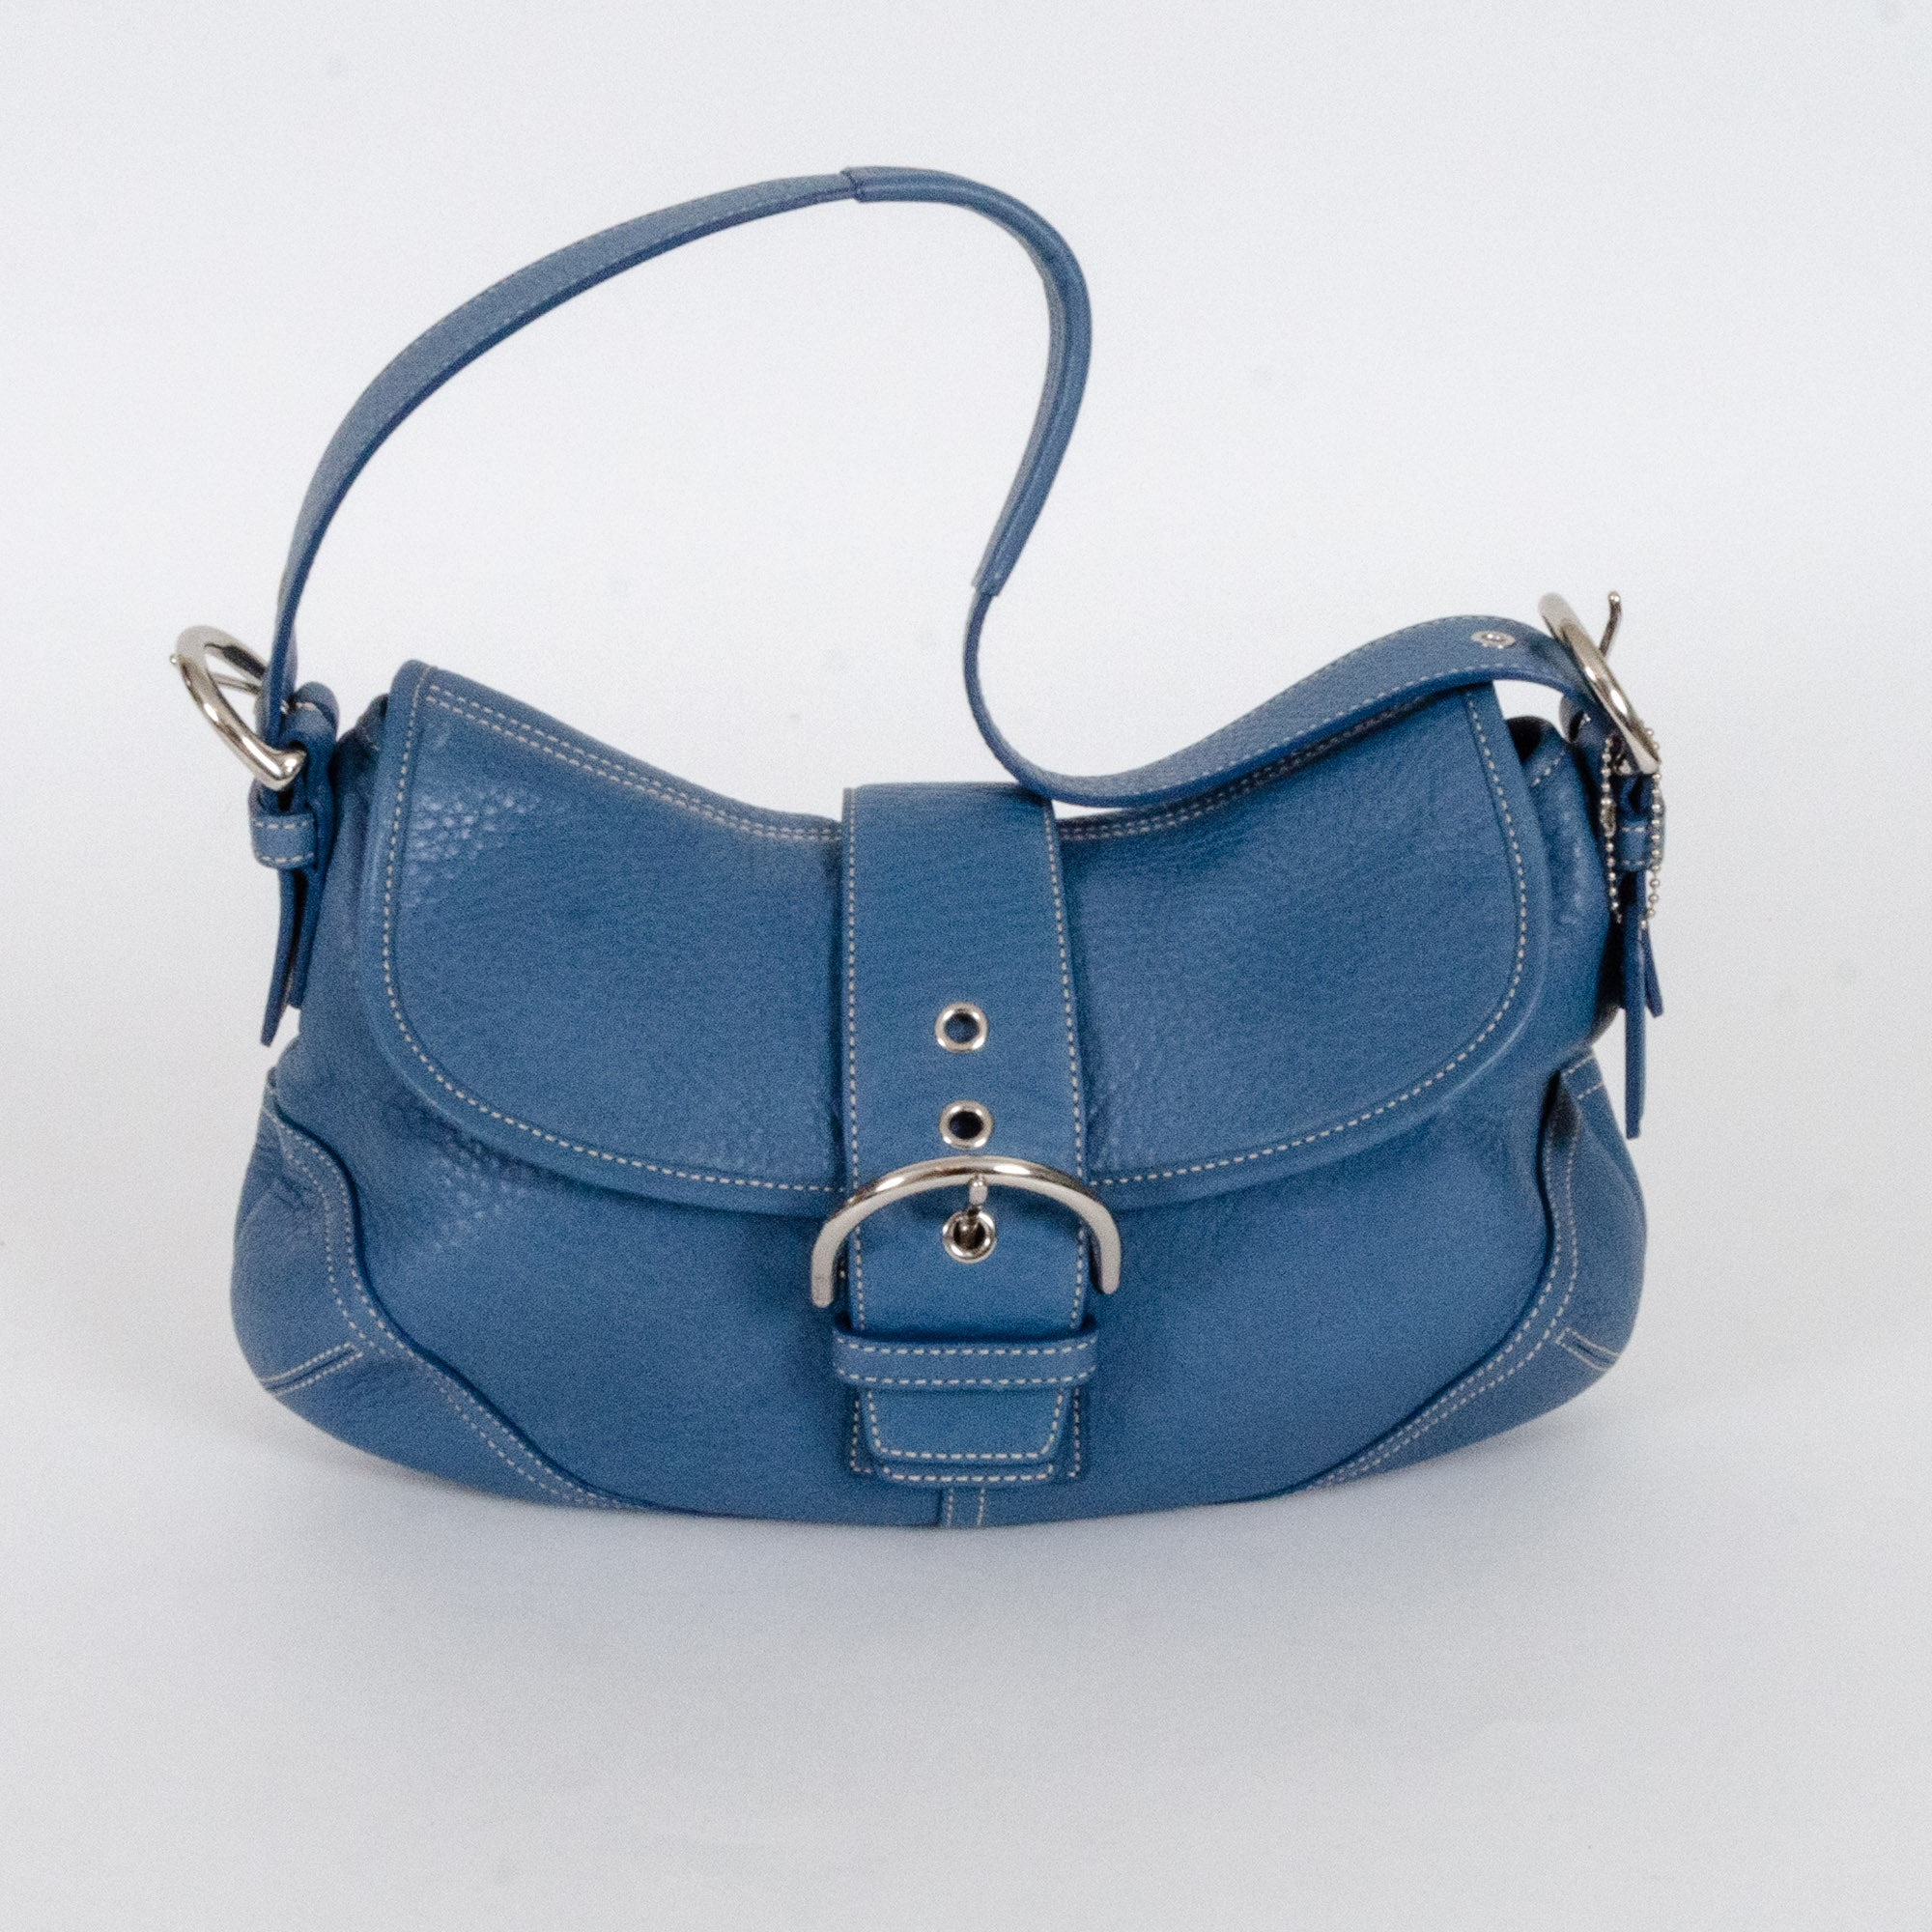 Coach Hamptons Blue Pebbled Leather Buckle Flap Demi Bag